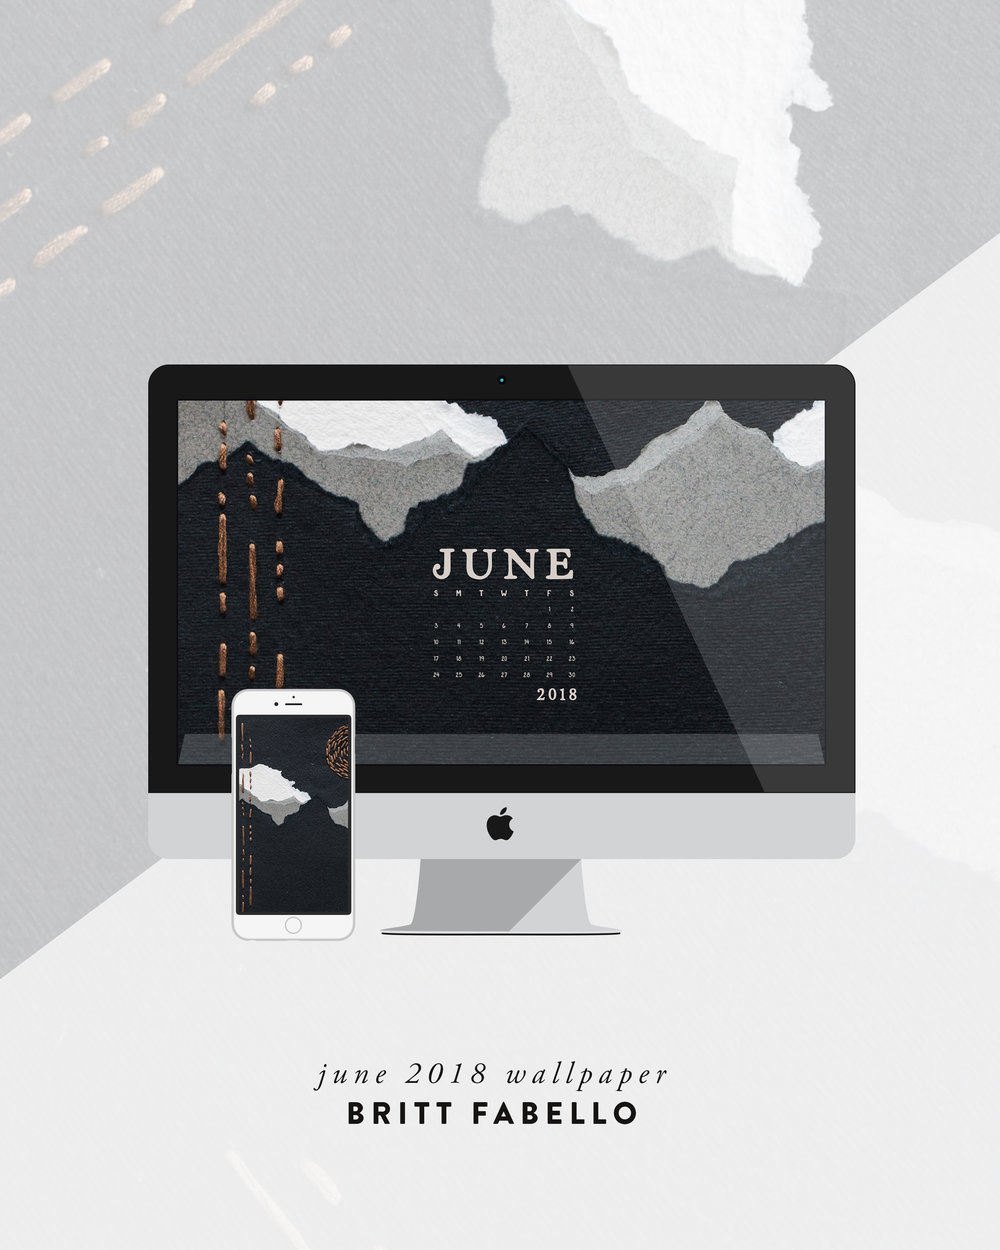 Wallpaper: June 2018 Calendar & Art | Britt Fabello